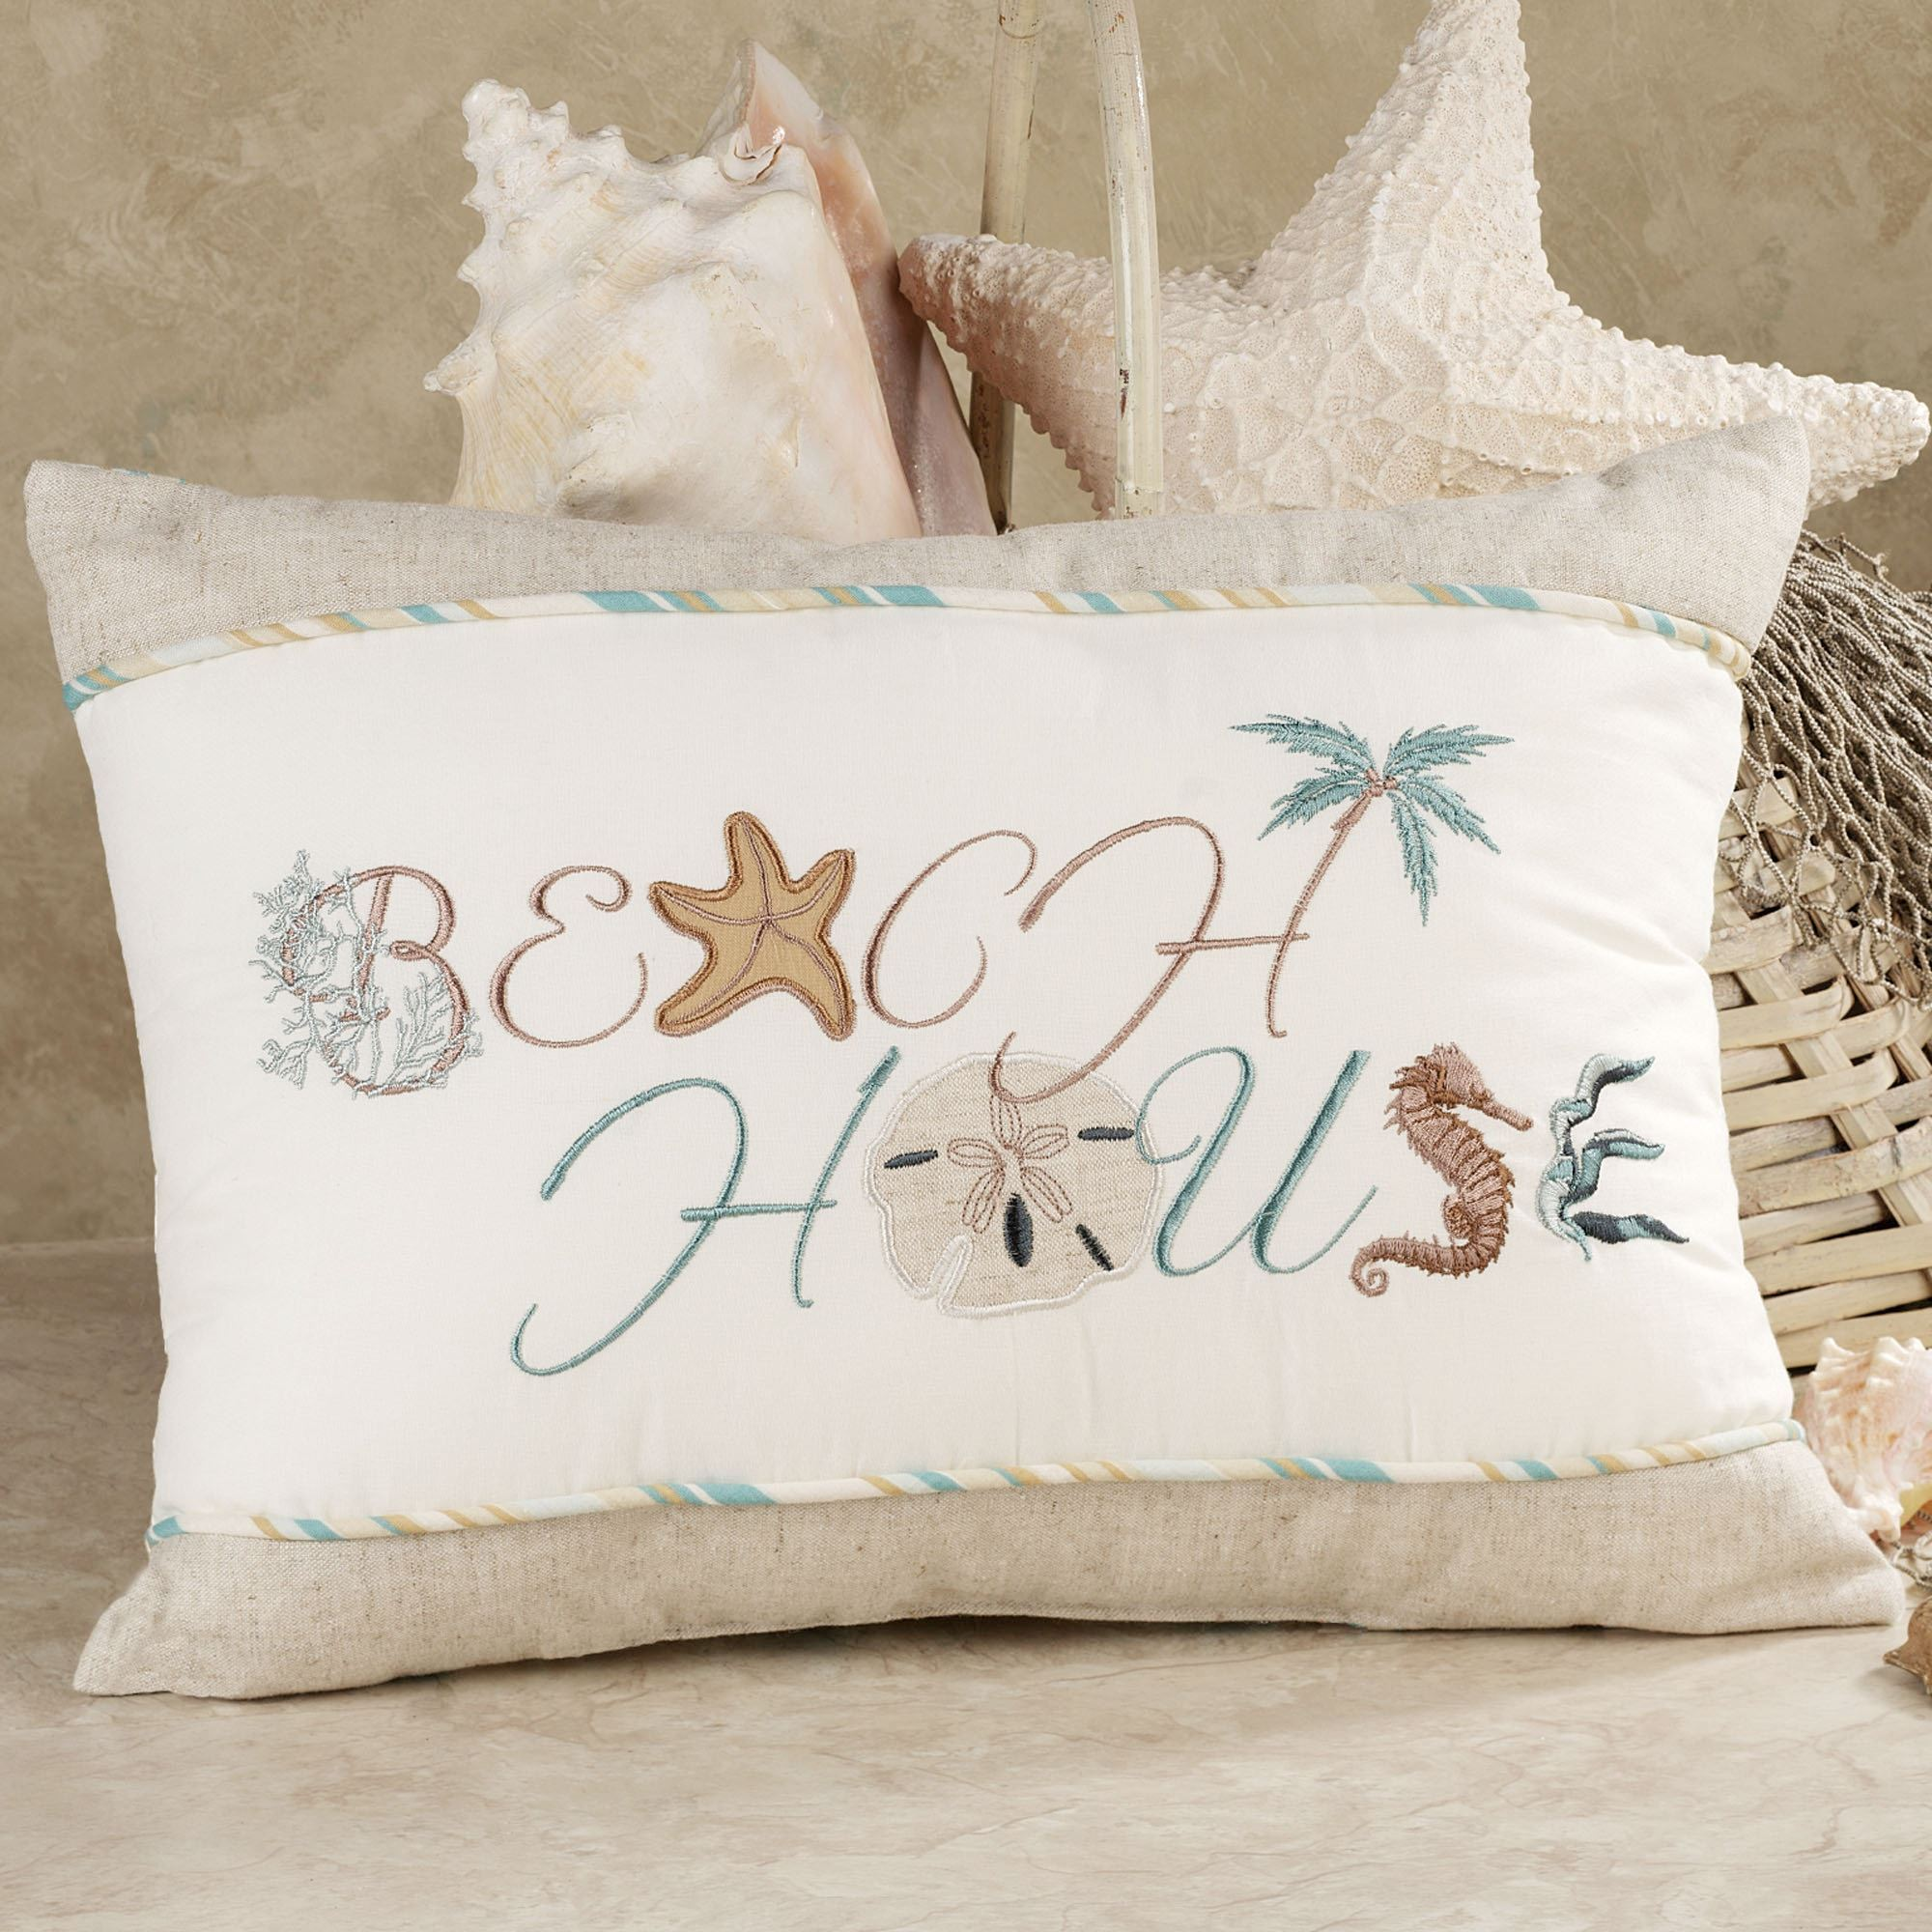 of cotton set beach howarmer canvas pillows aqua blue pillow pin theme cover decorative